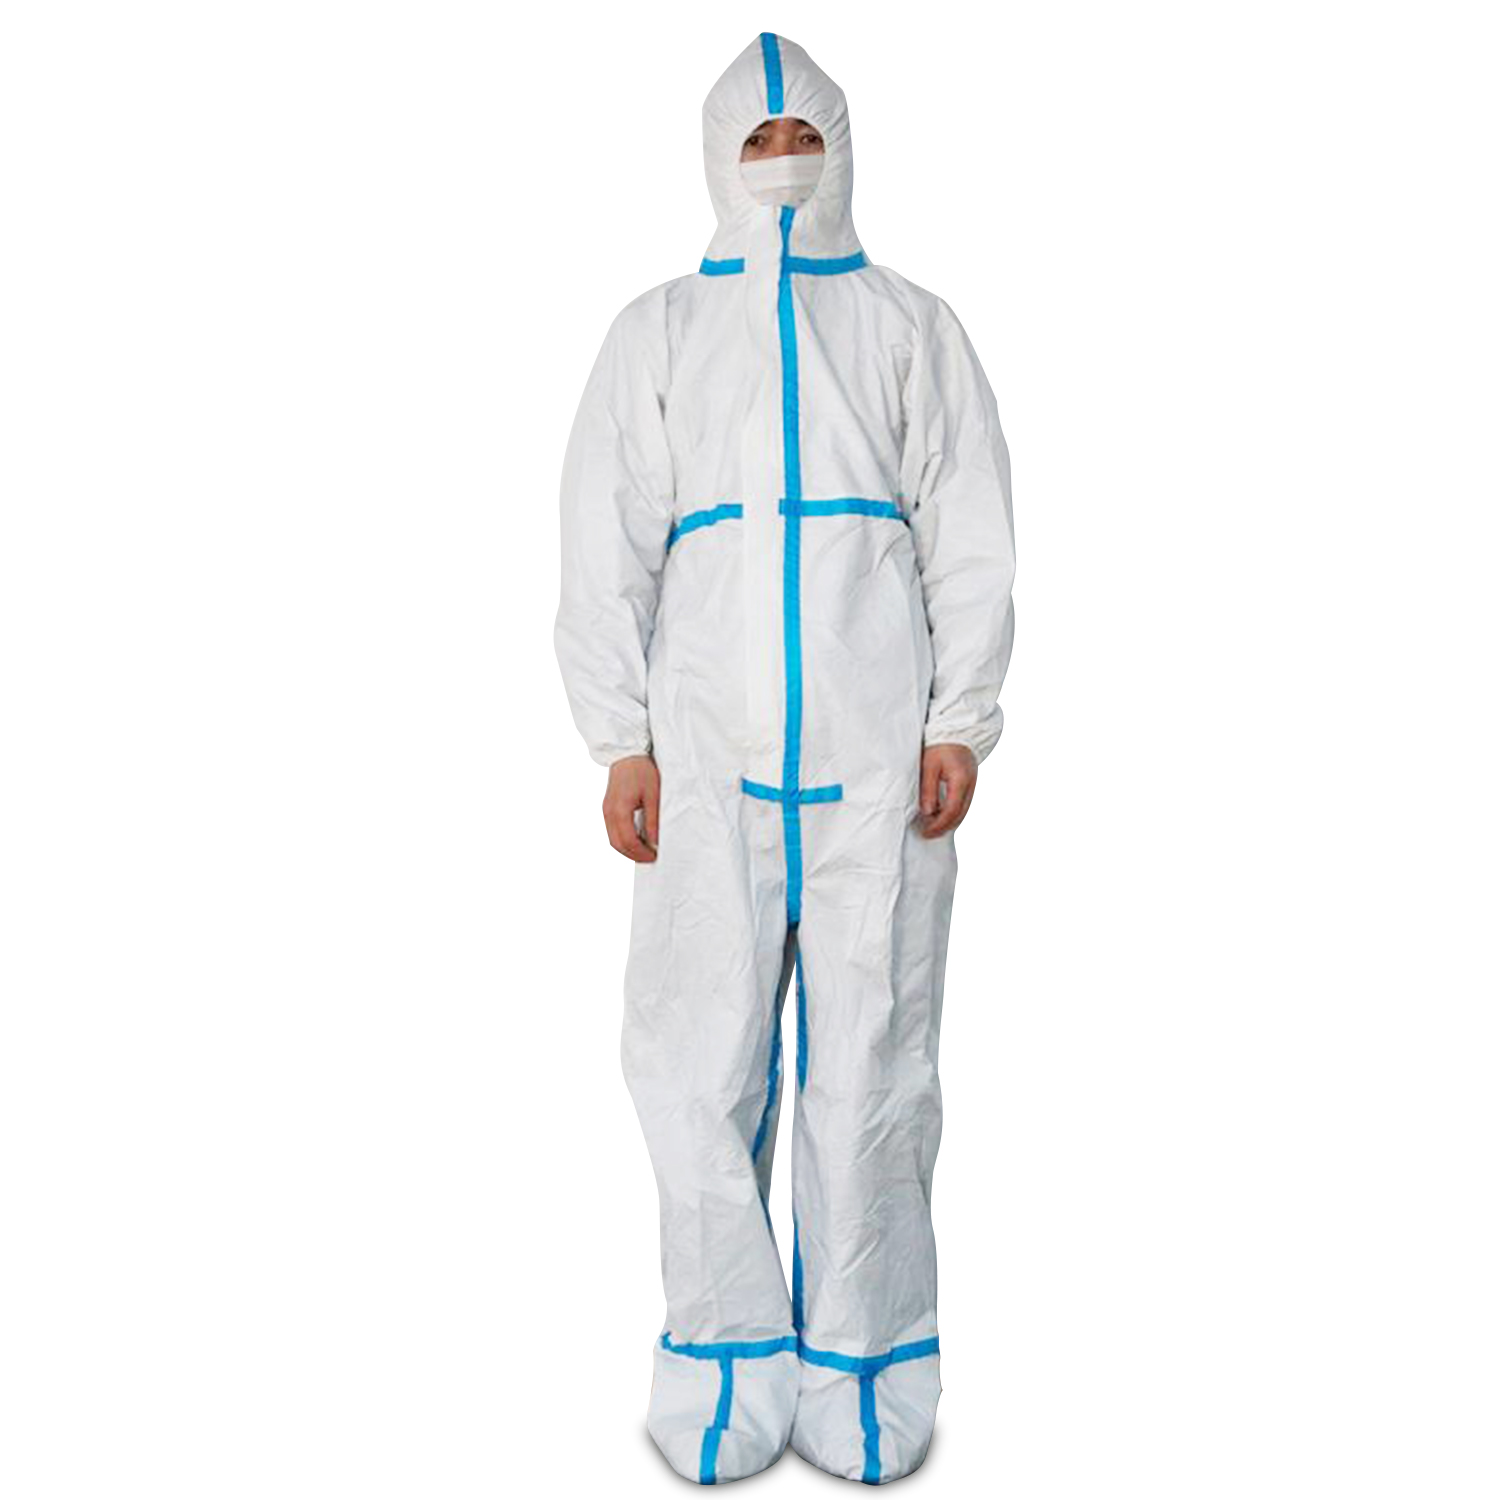 ISOLATION GOWN PROTECTIVE SUIT SAFETY COVERS